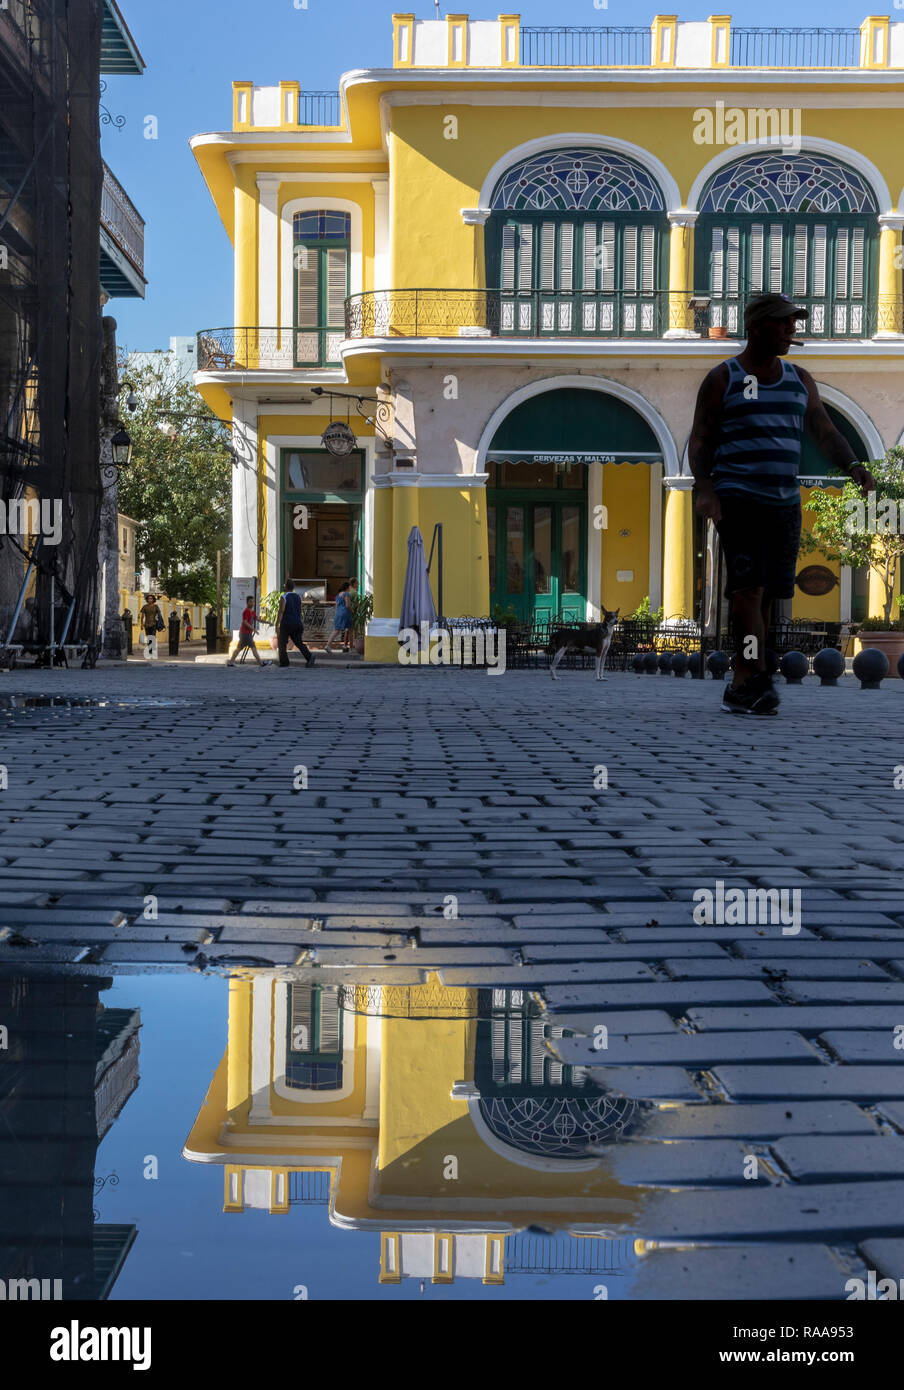 Colonial building of Plaza Vieja reflected in puddle - Stock Image